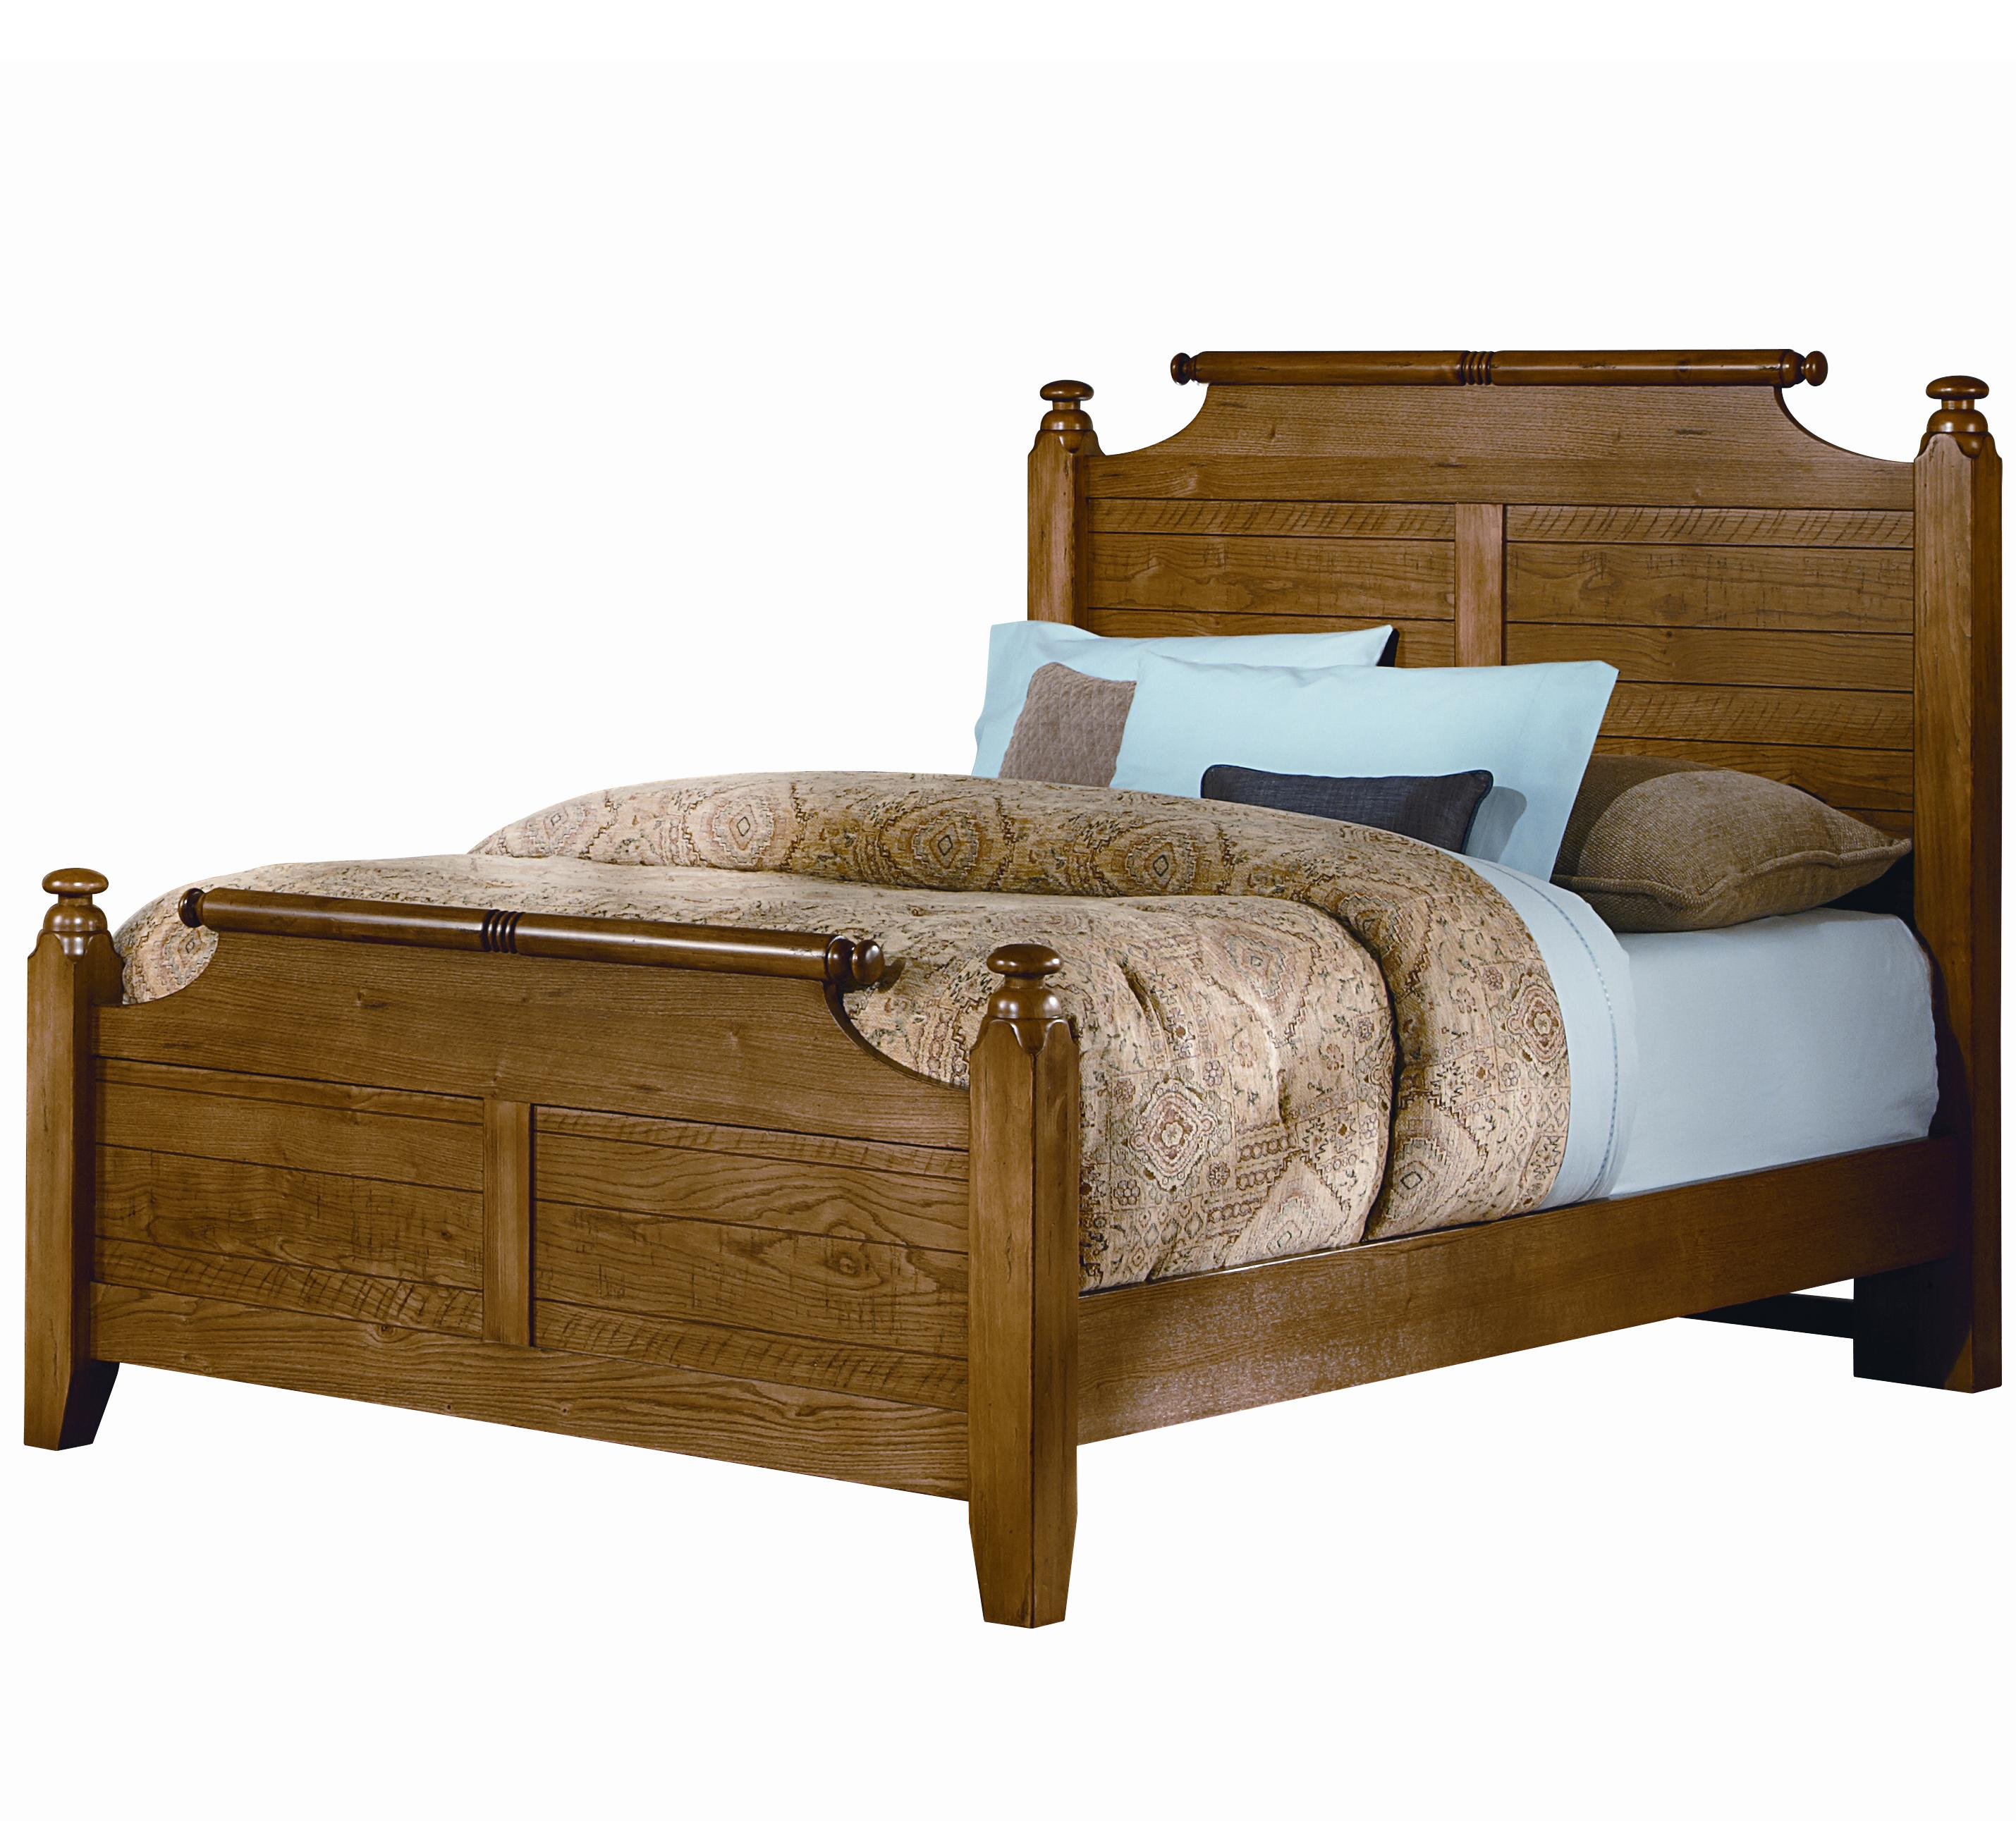 Vaughan Bassett Timber Mill King Broomhandle Poster Bed - Item Number: 667766922MS1